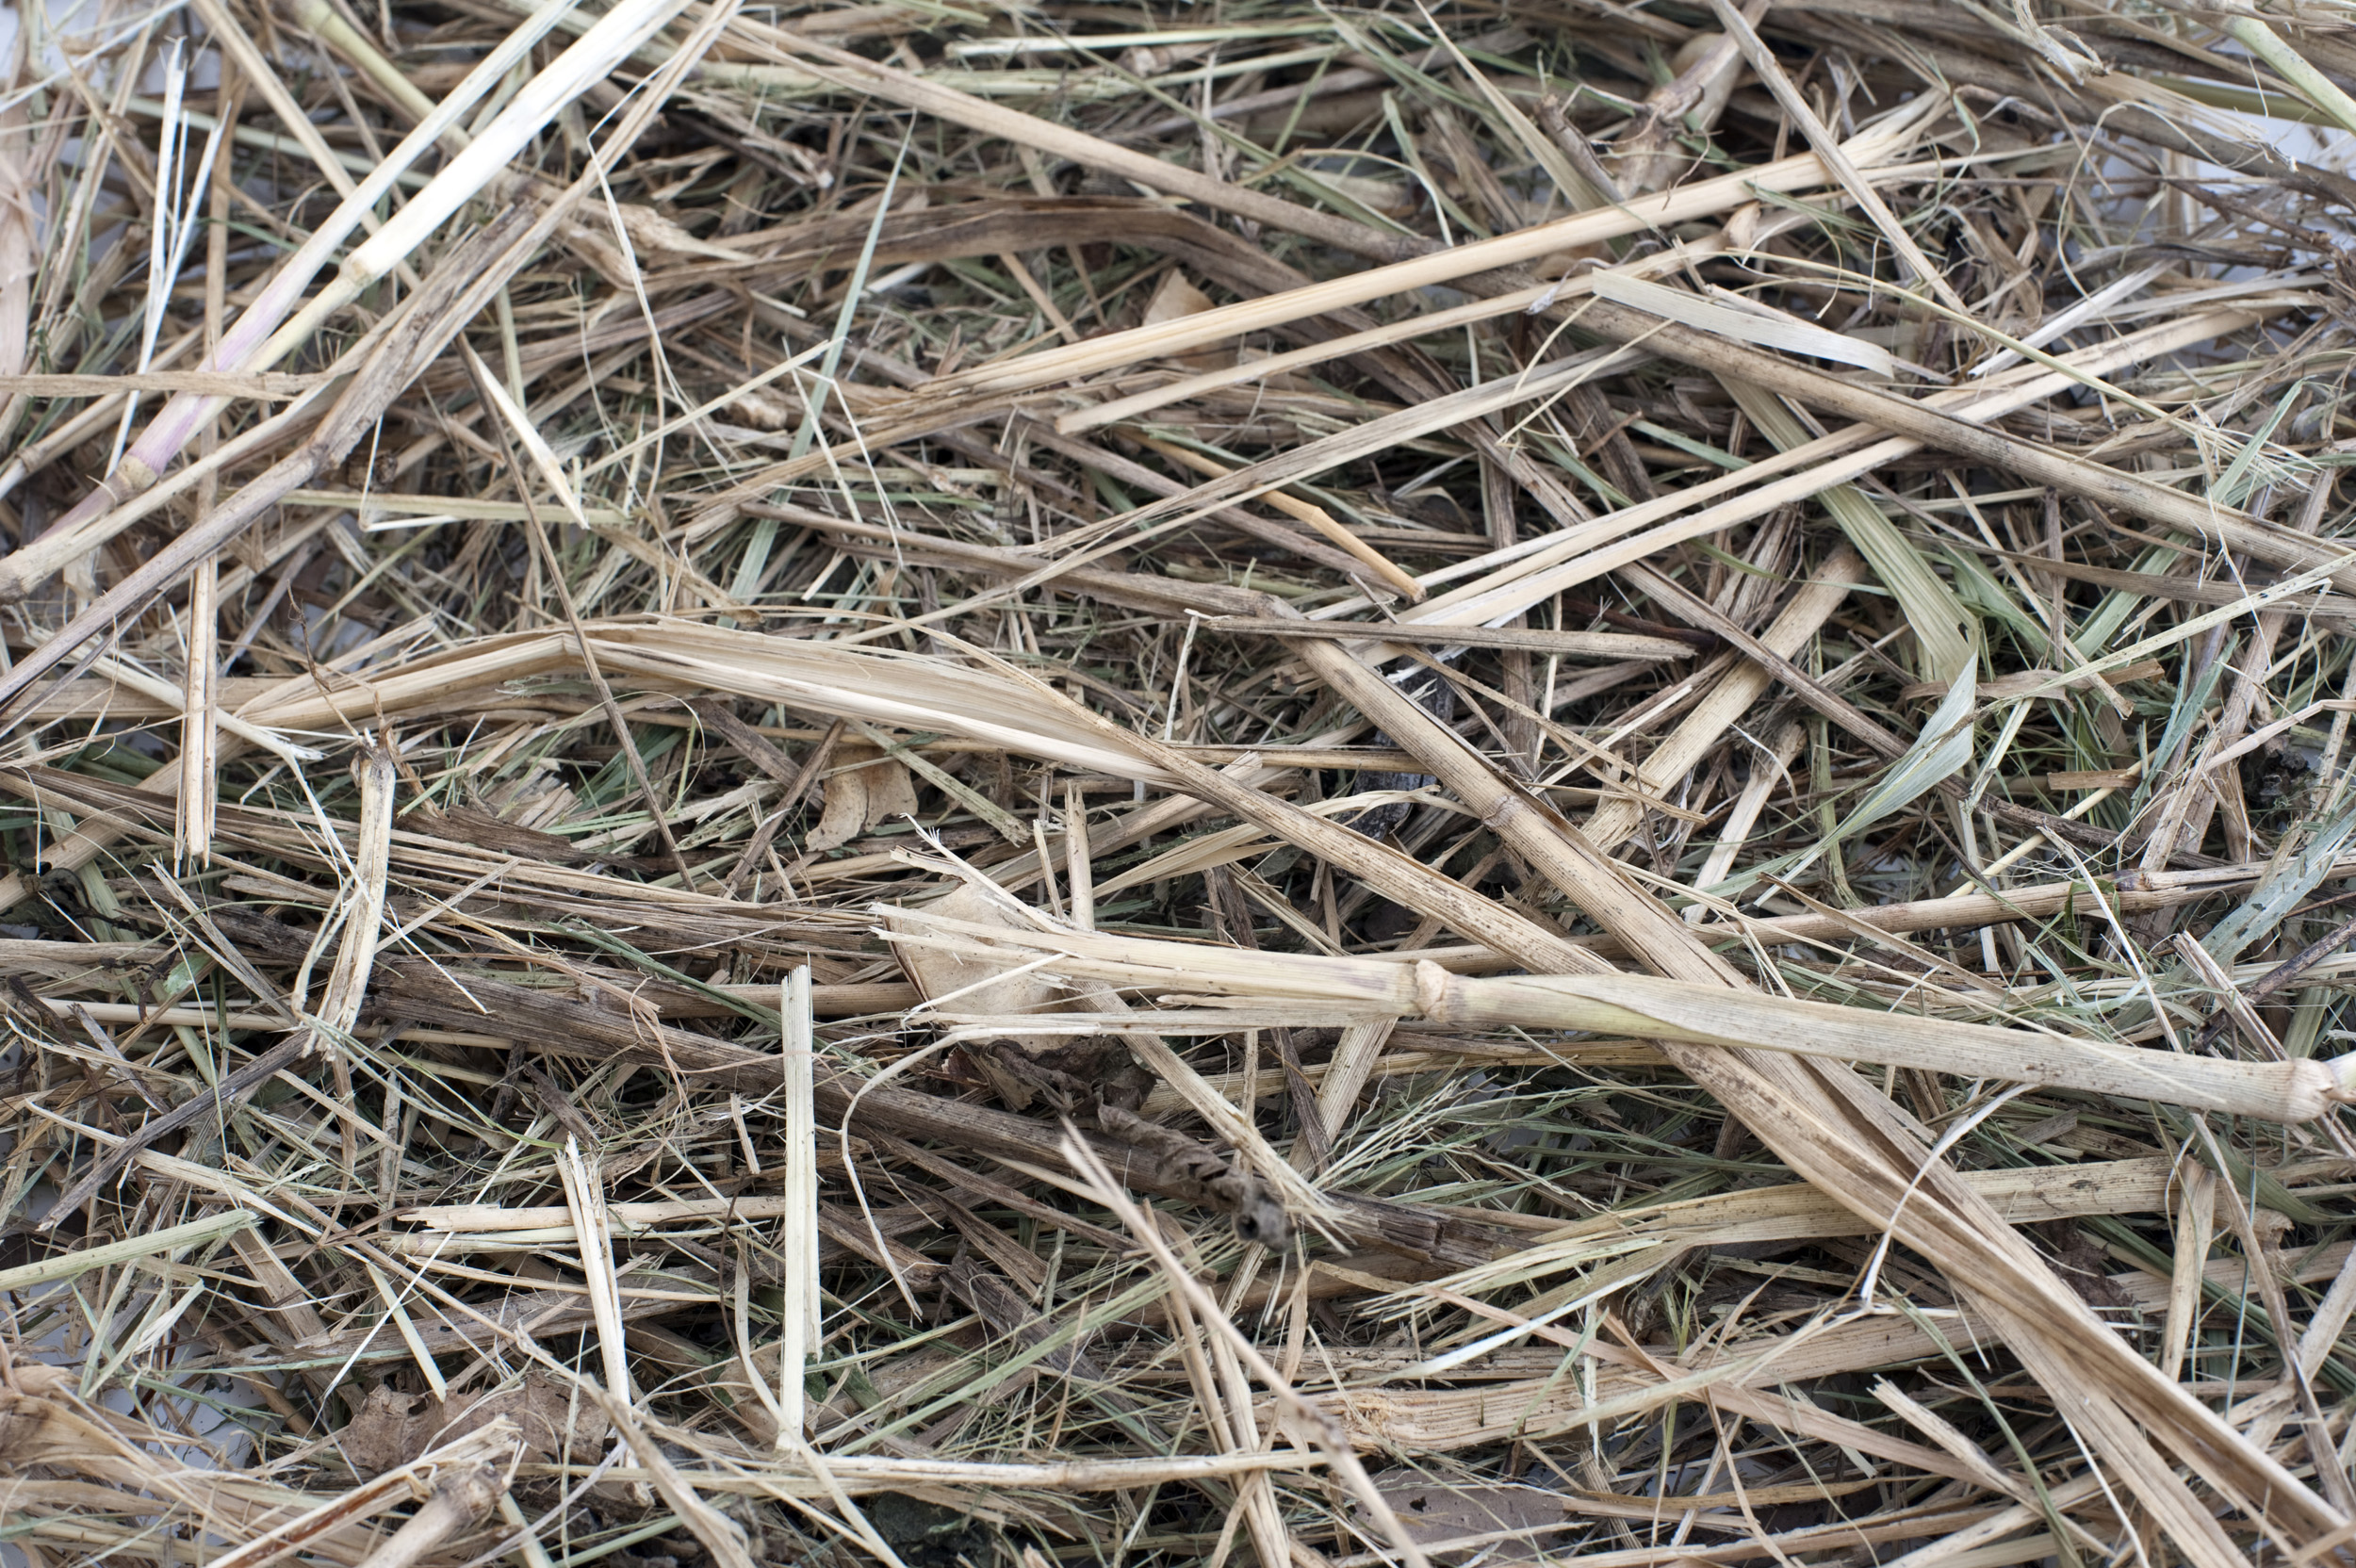 hay_background.jpg - Background of dried hay or straw produced from natural grass and used mainly for winter fodder and bedding for livestock